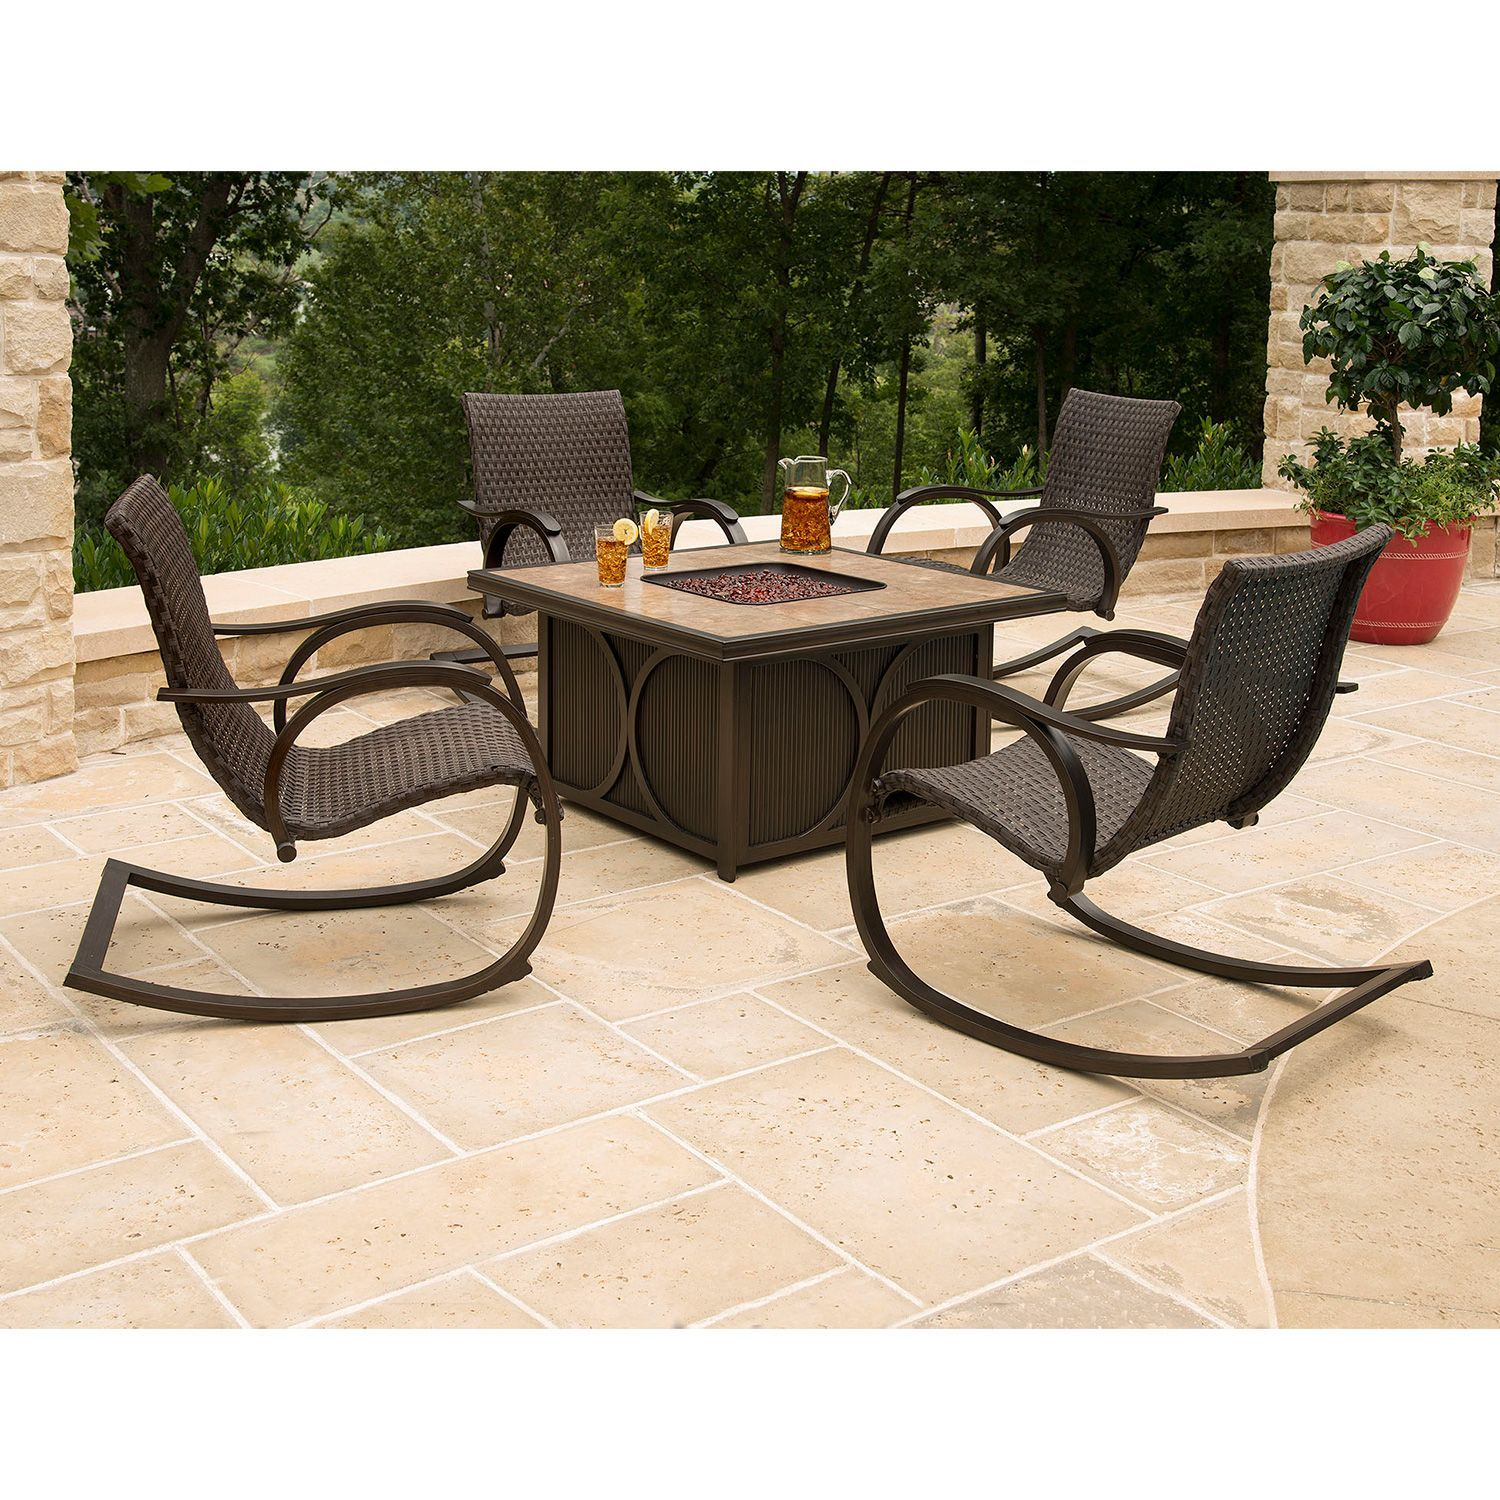 throughout patio immaculate decor with conversation table chairs pit fire and outdoor pits gas your furniture sets residence